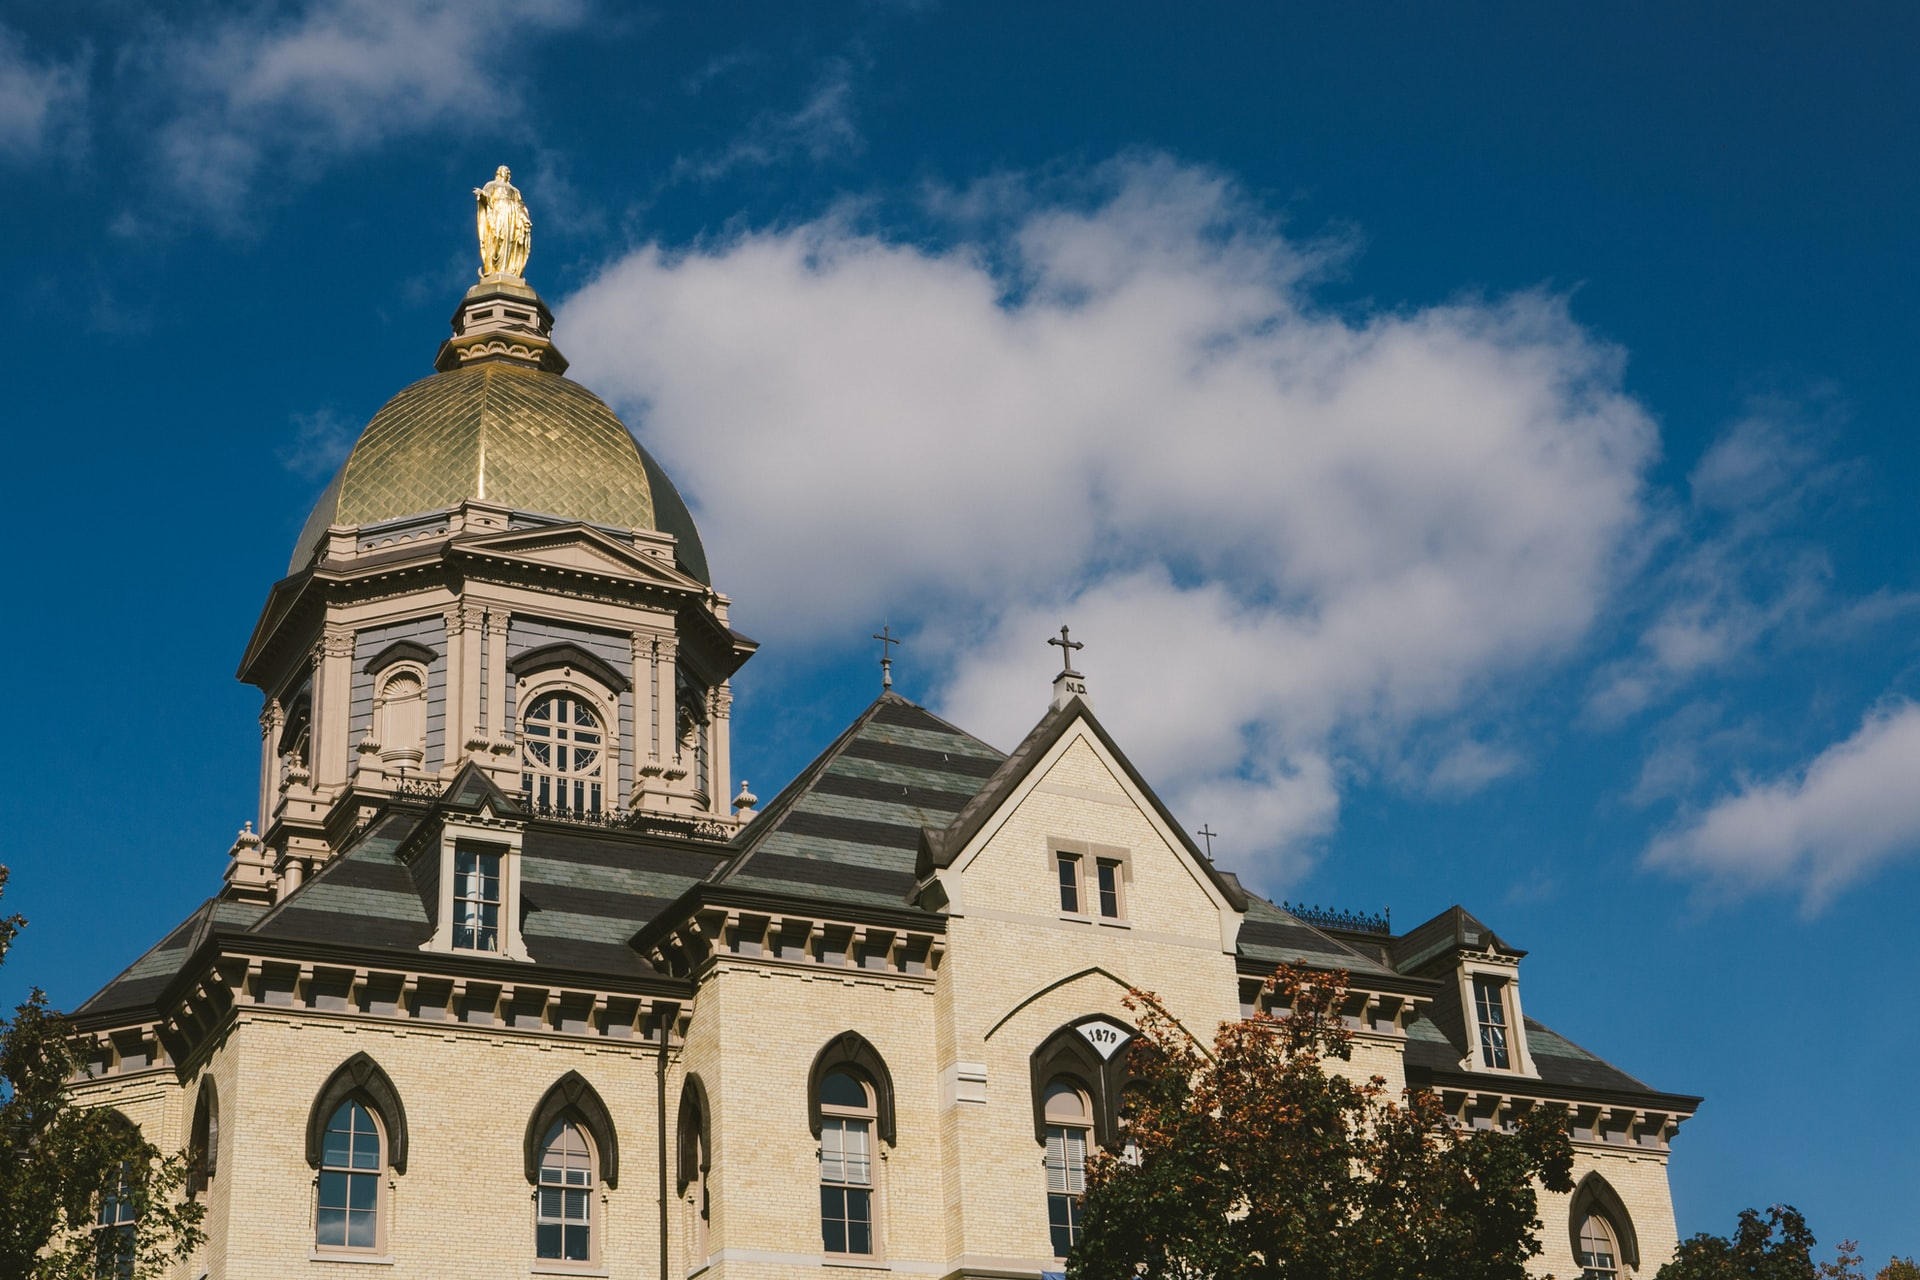 Mid shot of the Statue of Mary and the Golden Dome on top of Notre Dame University Administration Building